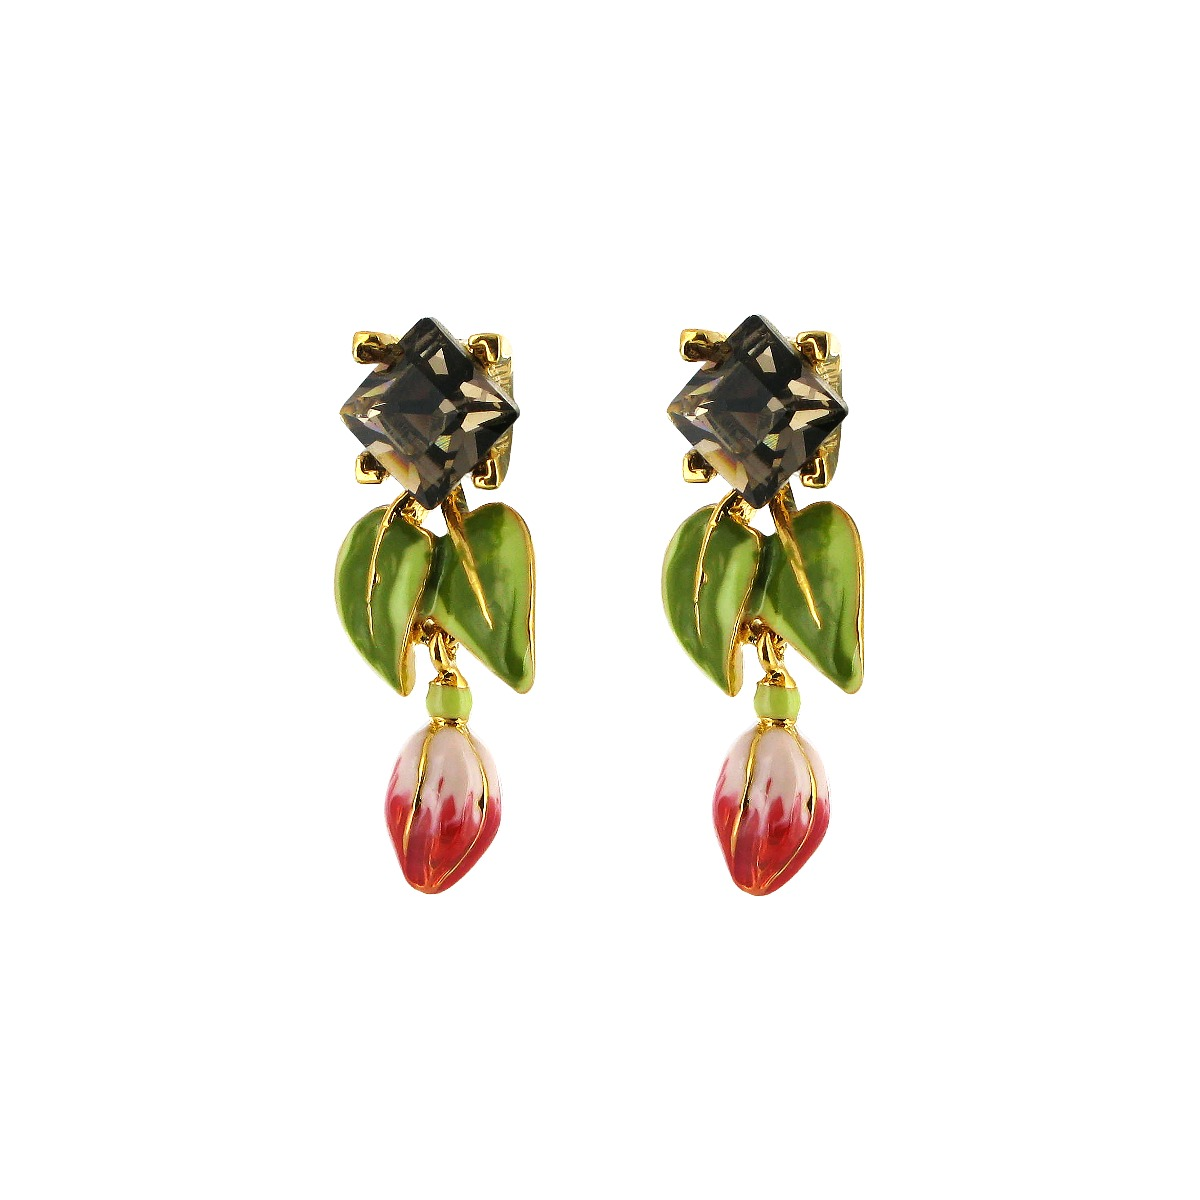 Floral swarovski drop earrings